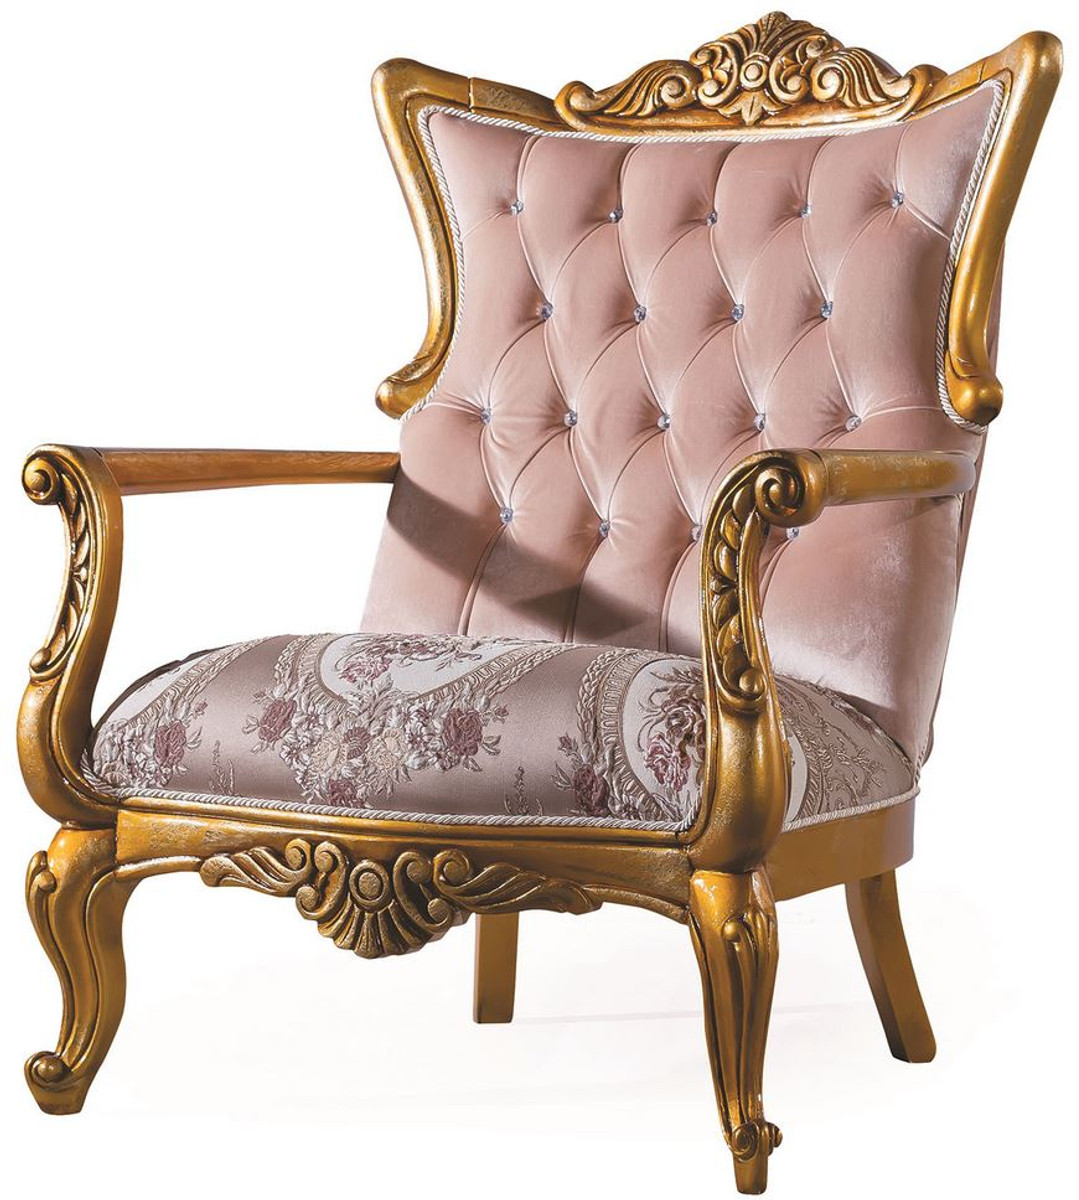 Casa Padrino Luxury Baroque Living Room Armchair With Rhinestones Pink Gold 90 X 85 X H 110 Cm Living Room Furniture In Baroque Style - Casa Padrino Sessel